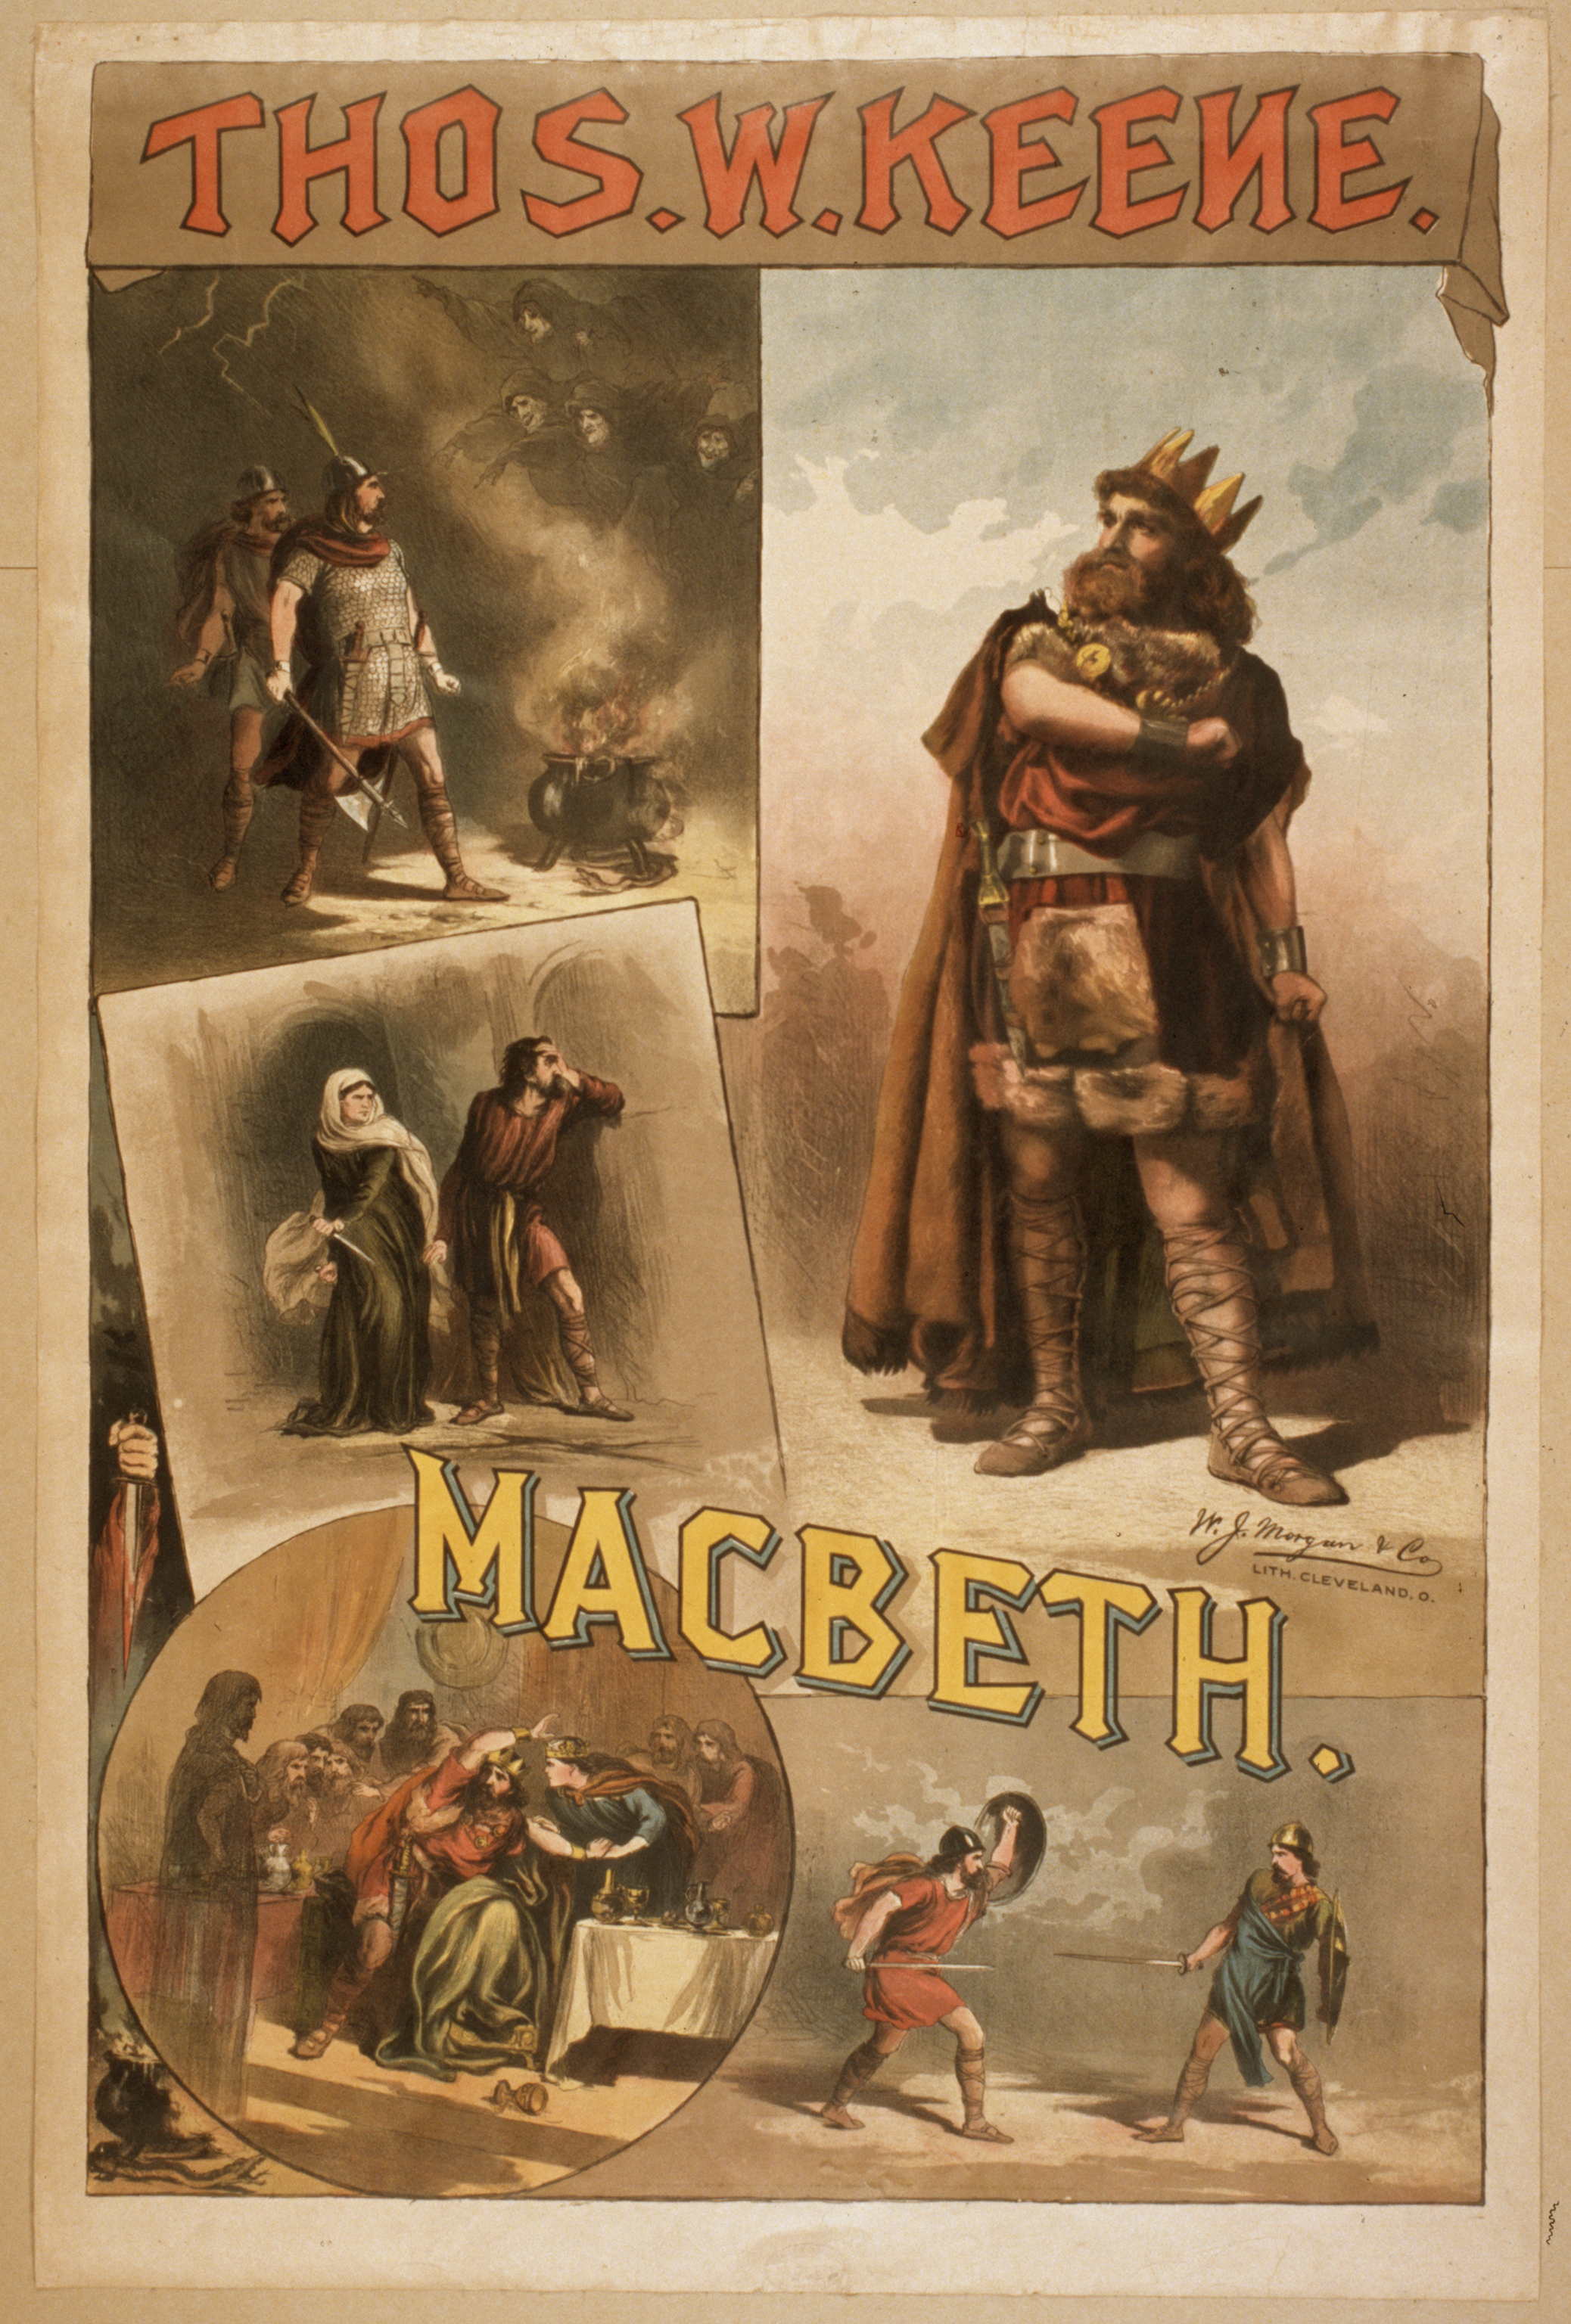 Depiction of Macbeth